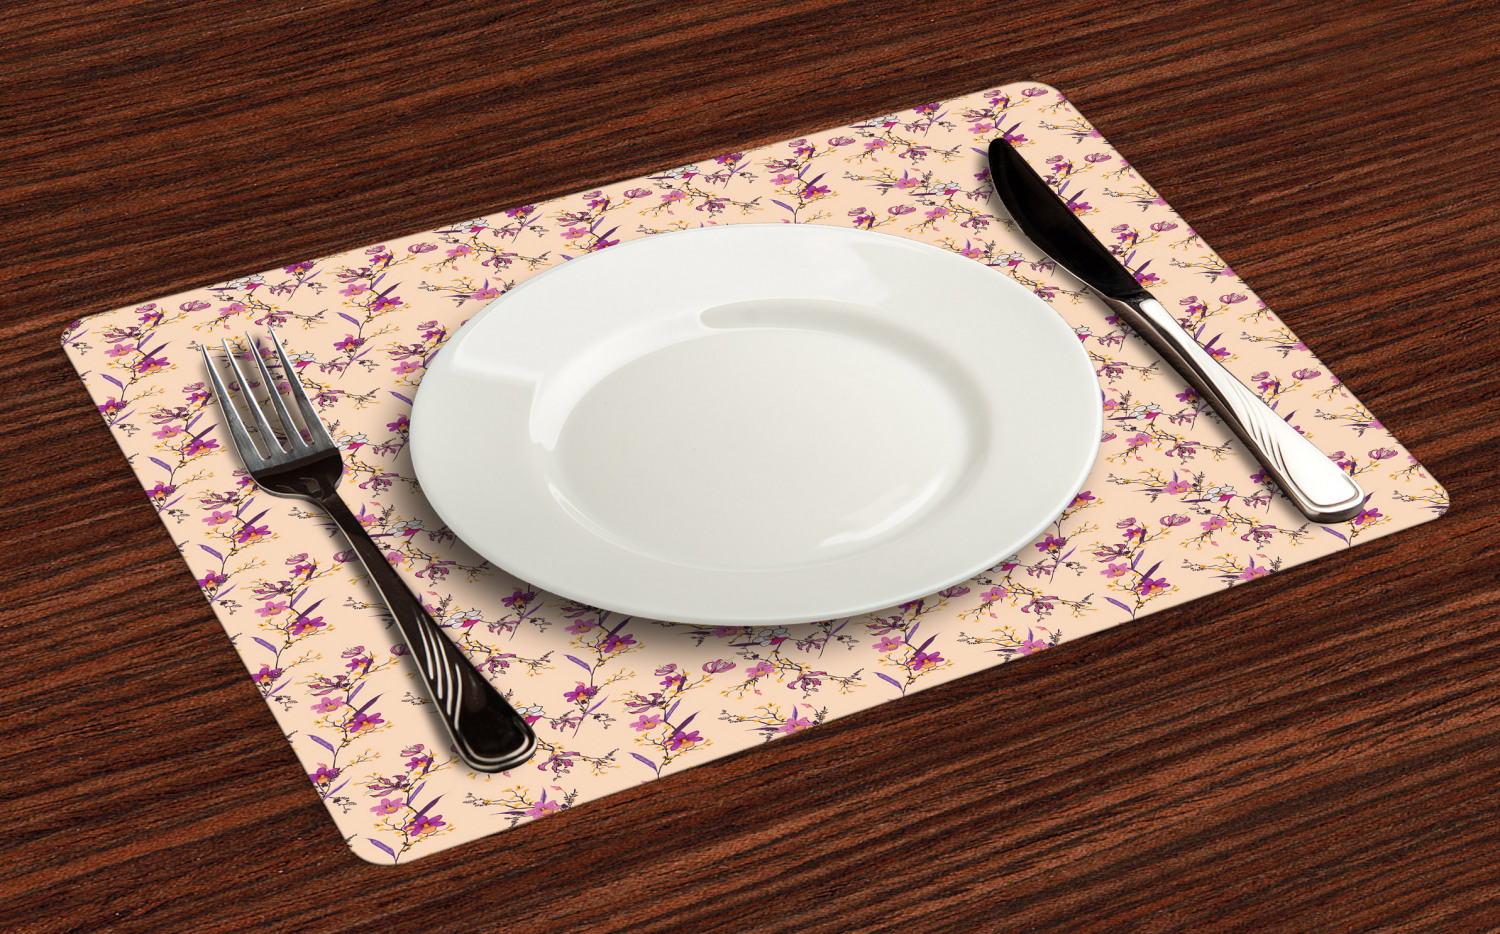 Ambesonne-Flower-Pattern-Placemat-Set-of-4-Fabric-Place-Mats-for-Table-Decor thumbnail 81